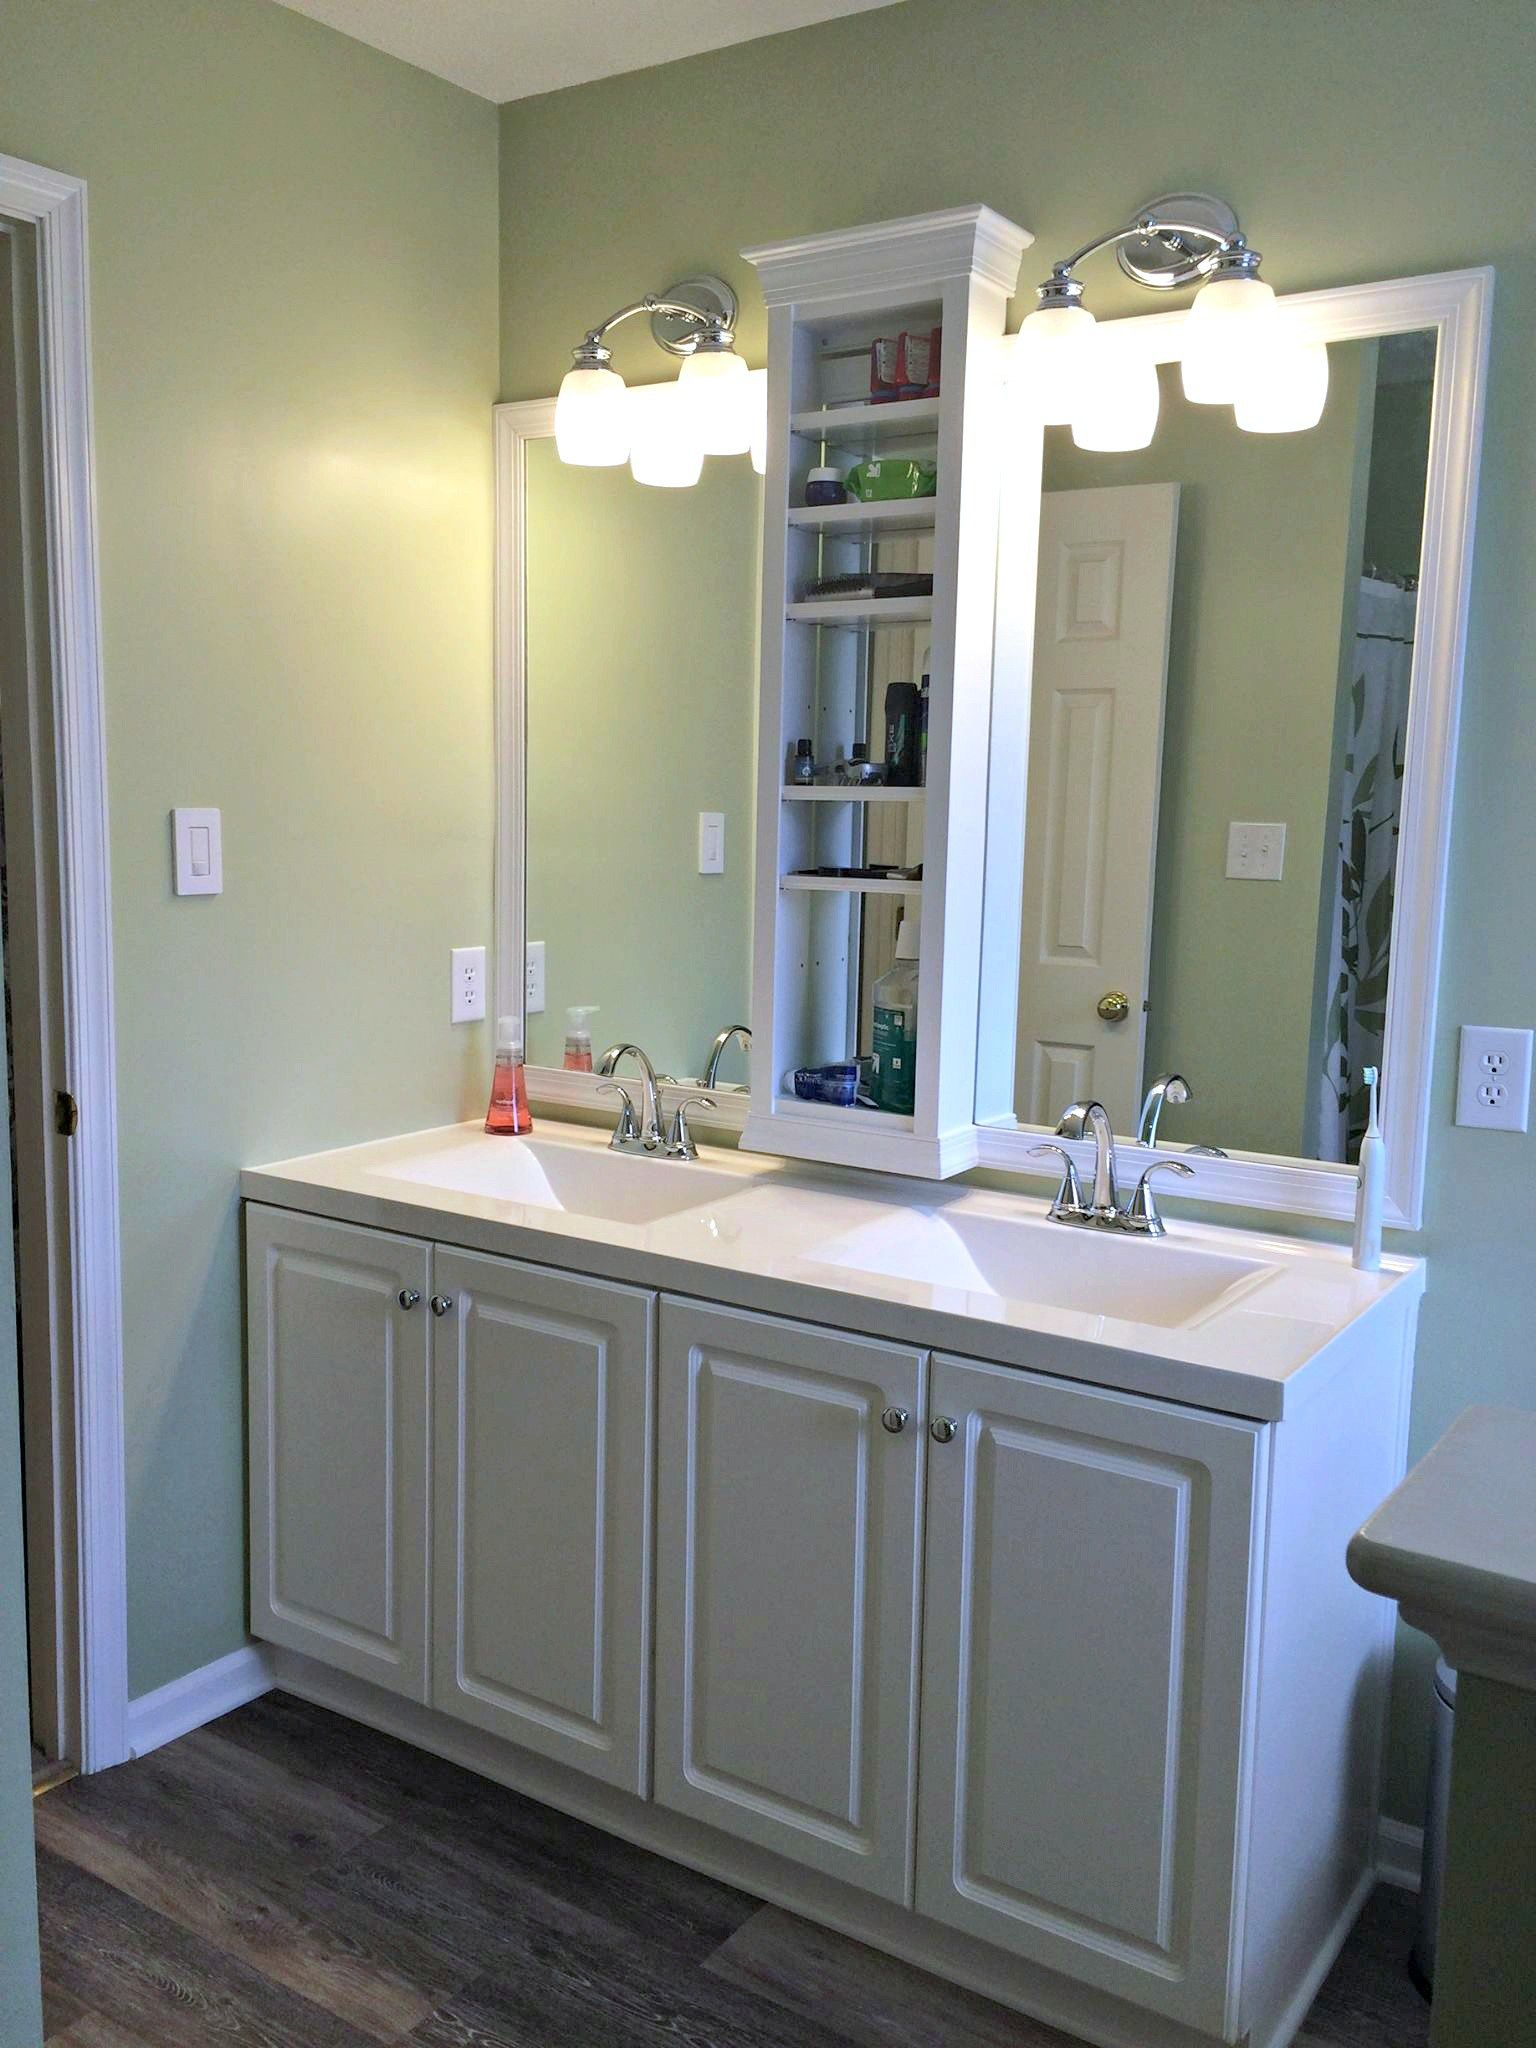 Built In Bathroom Vanities master bathroom vanity sink mirror update - built in shelves